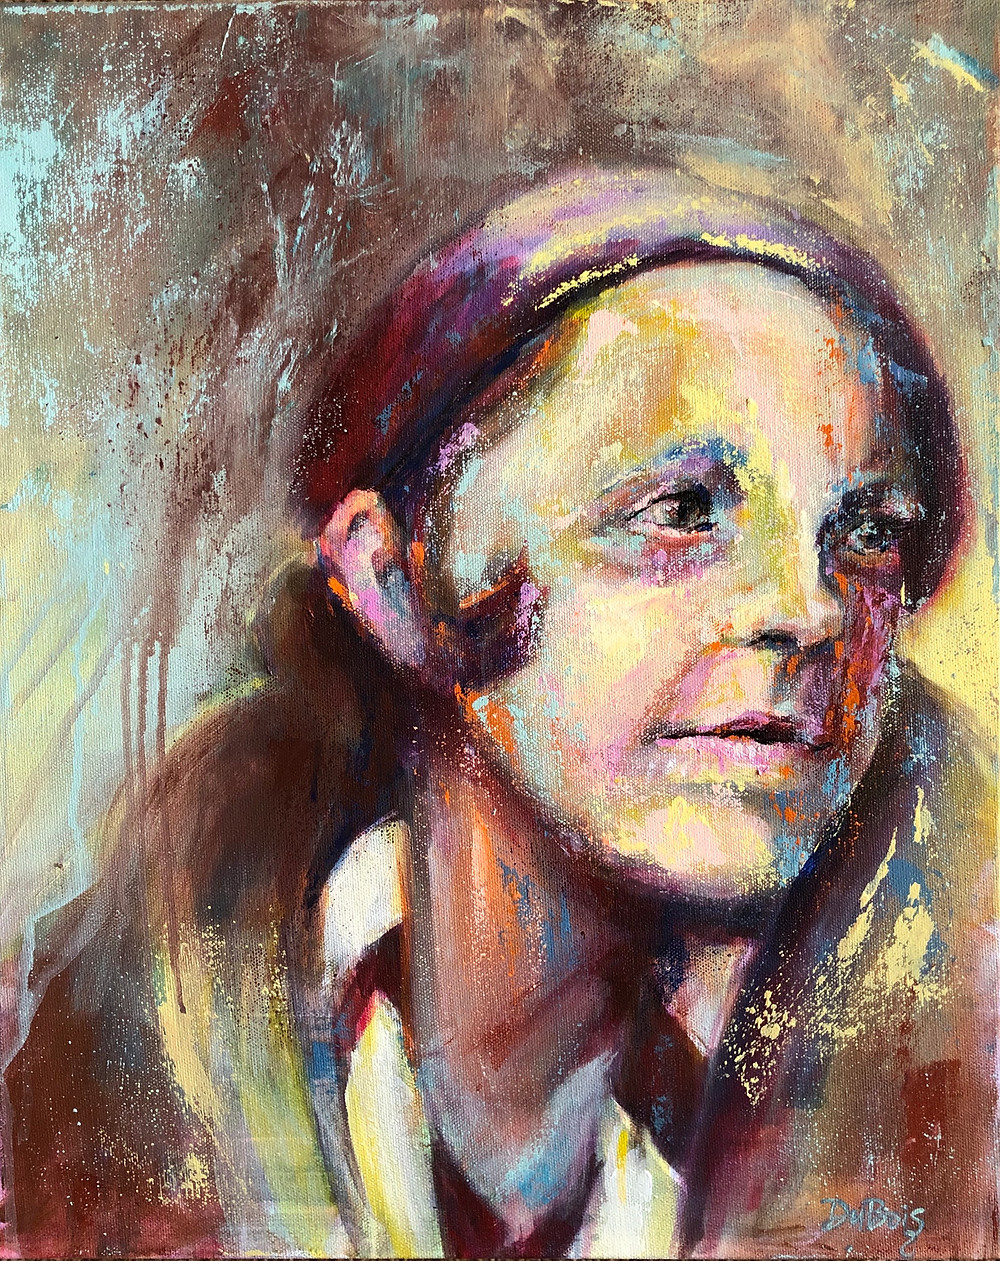 An acrylic portrait of a woman from the 1920's.